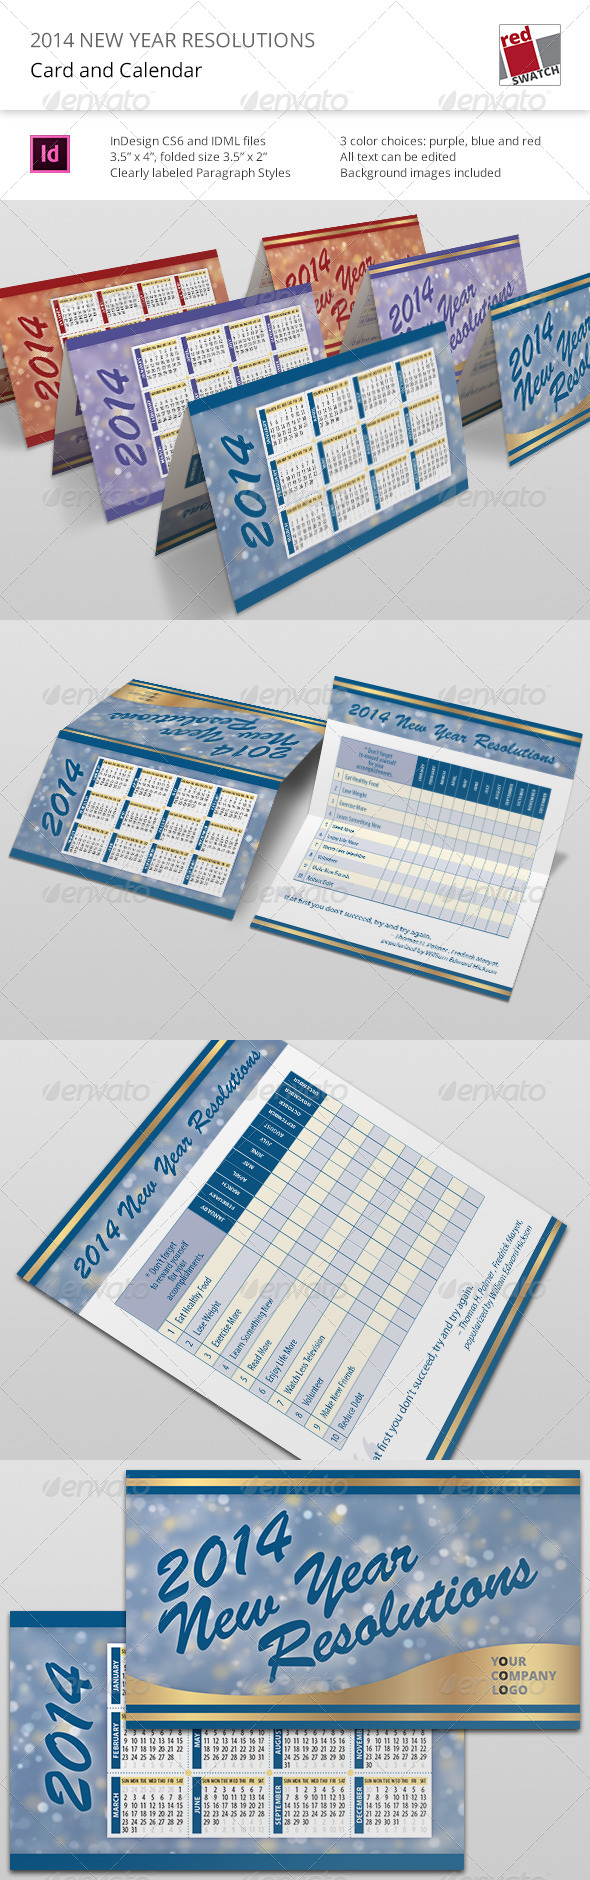 GraphicRiver 2014 New Year Resolutions Card and Calendar 6230600